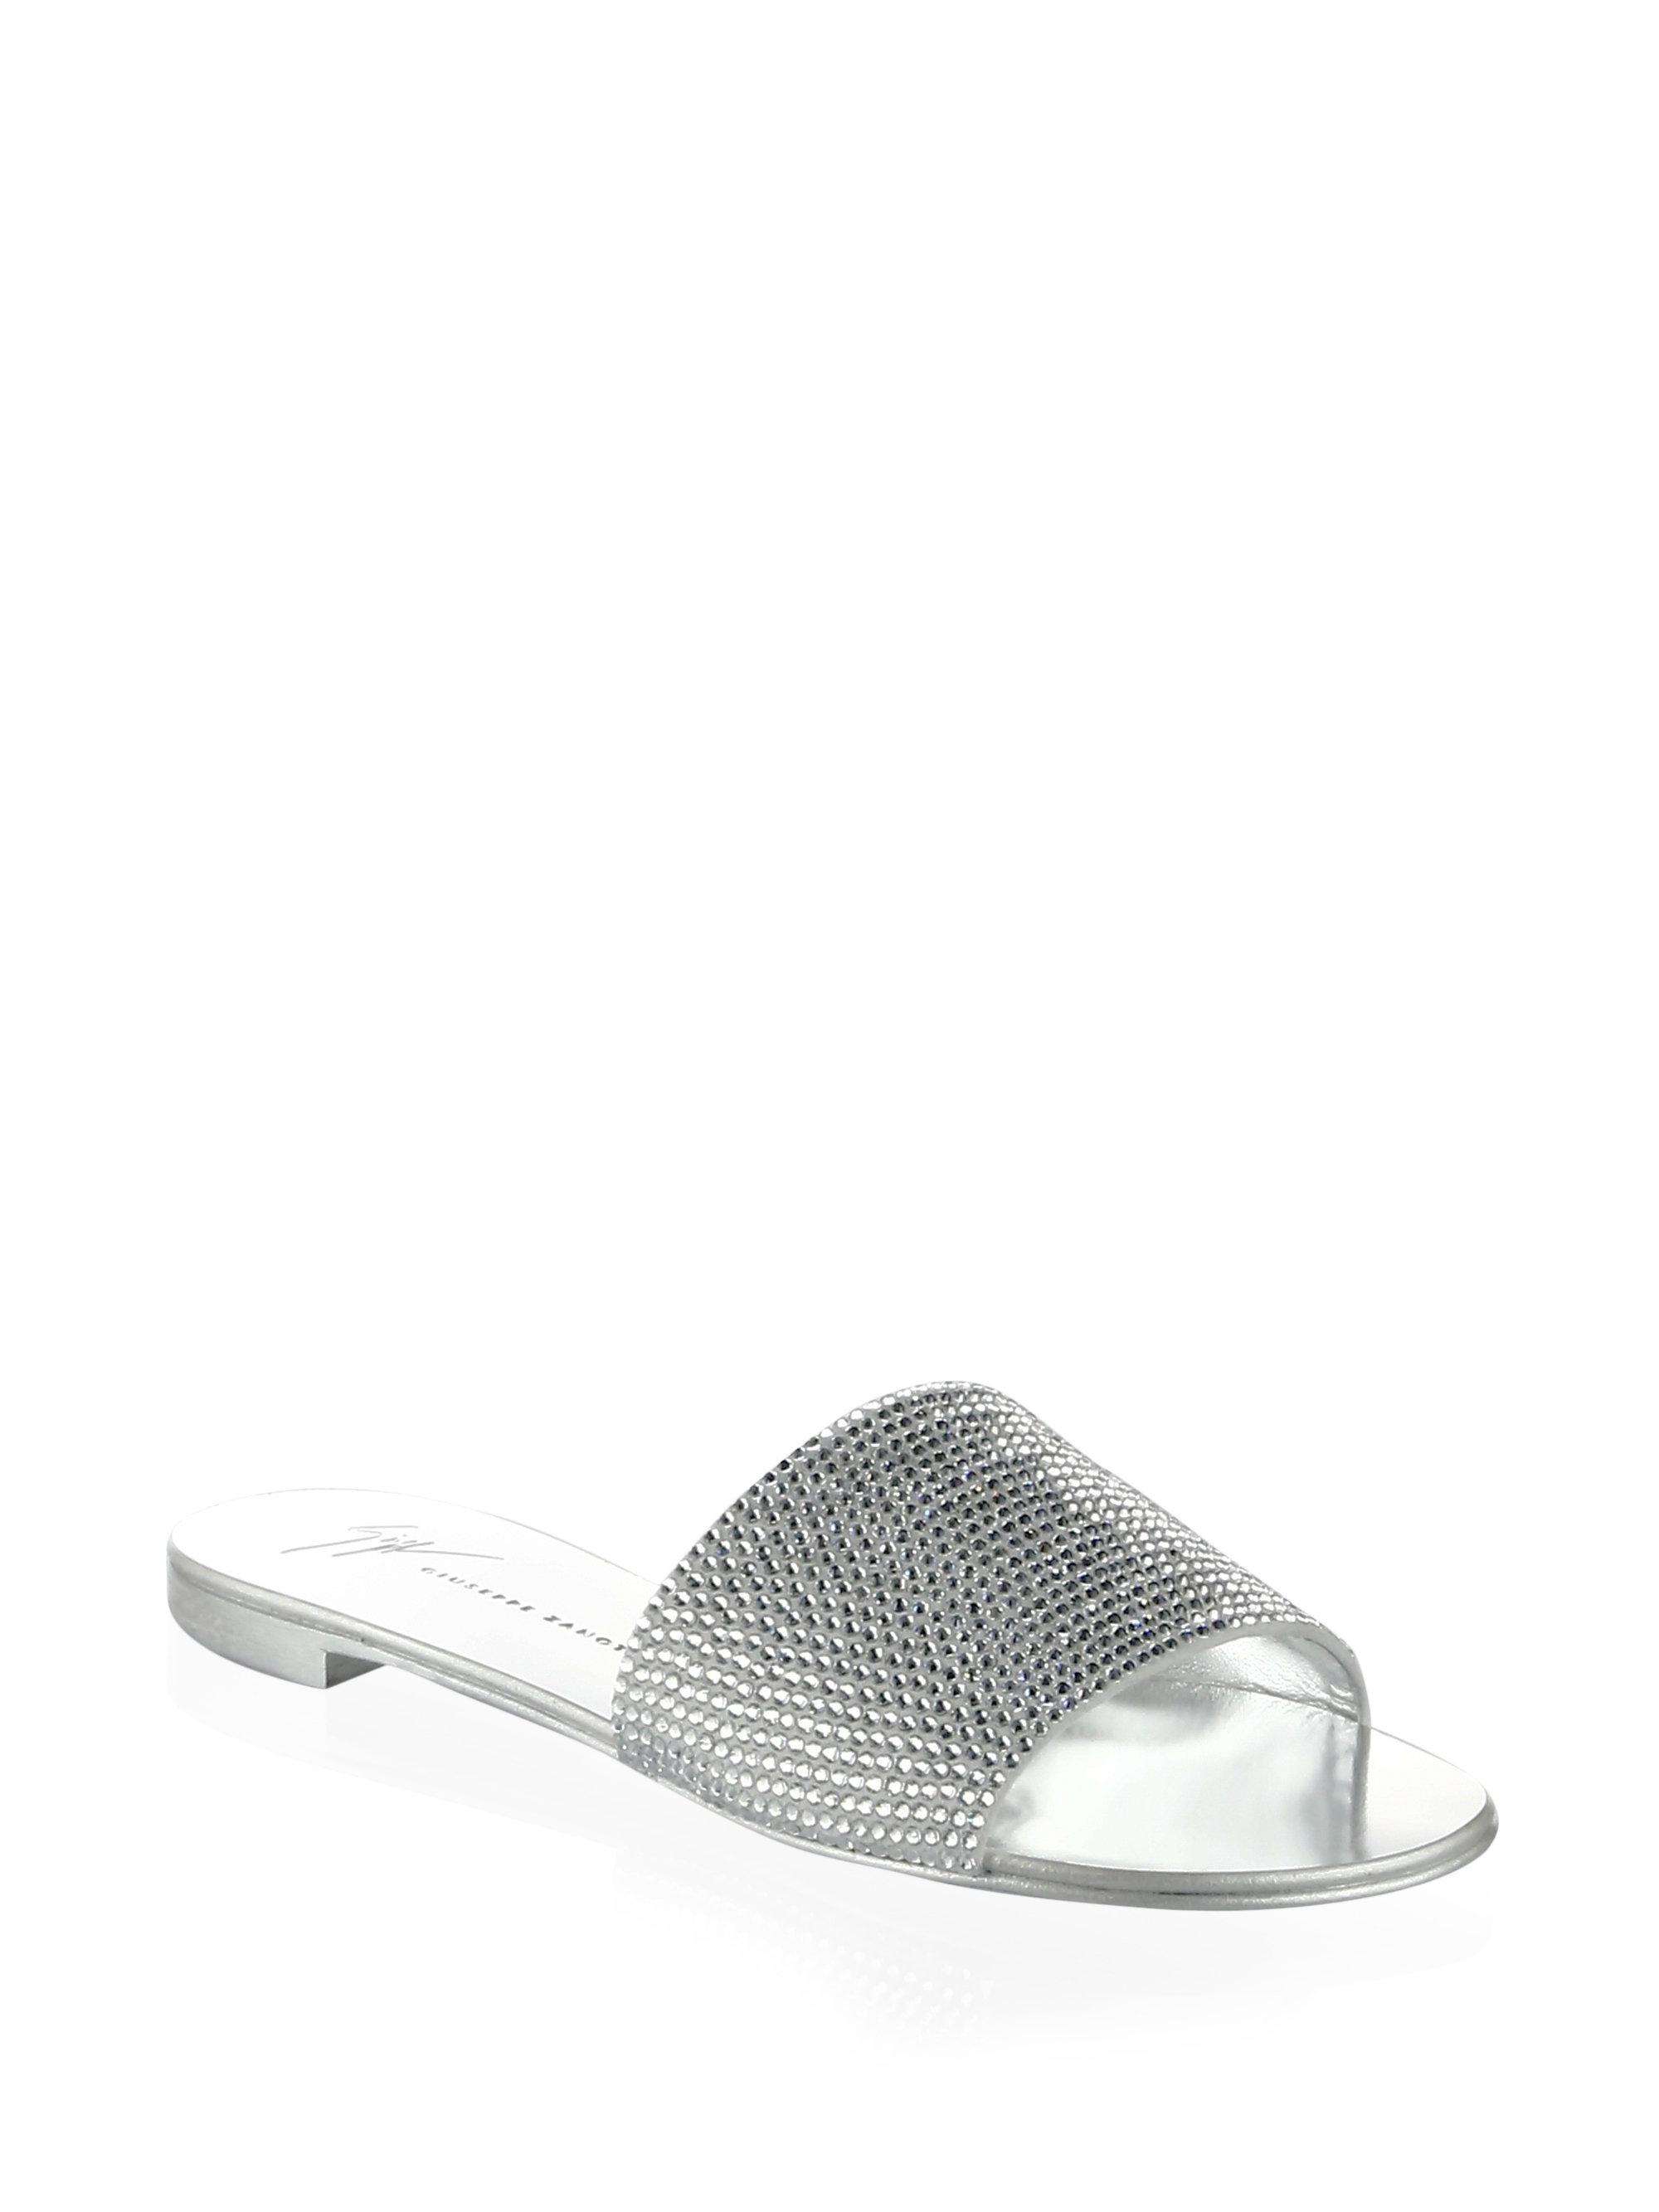 Sandals ROLL 10 suede Strass light grey silver Giuseppe Zanotti